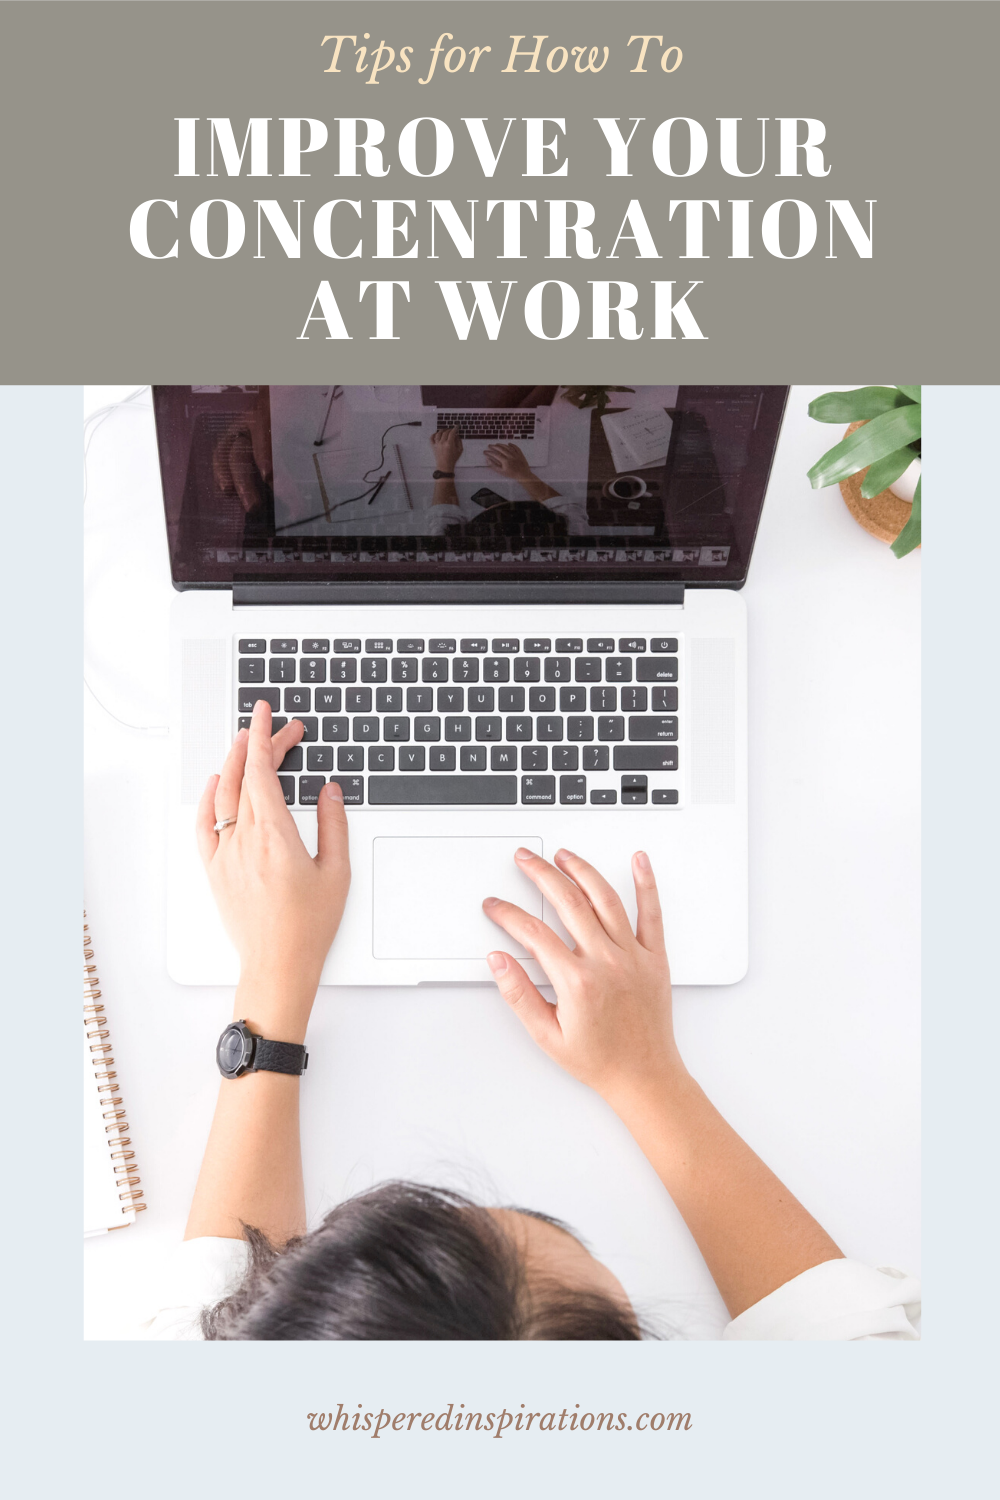 A woman types on a computer working in an office setting. This article covers tips on how to improve your concentration at work.